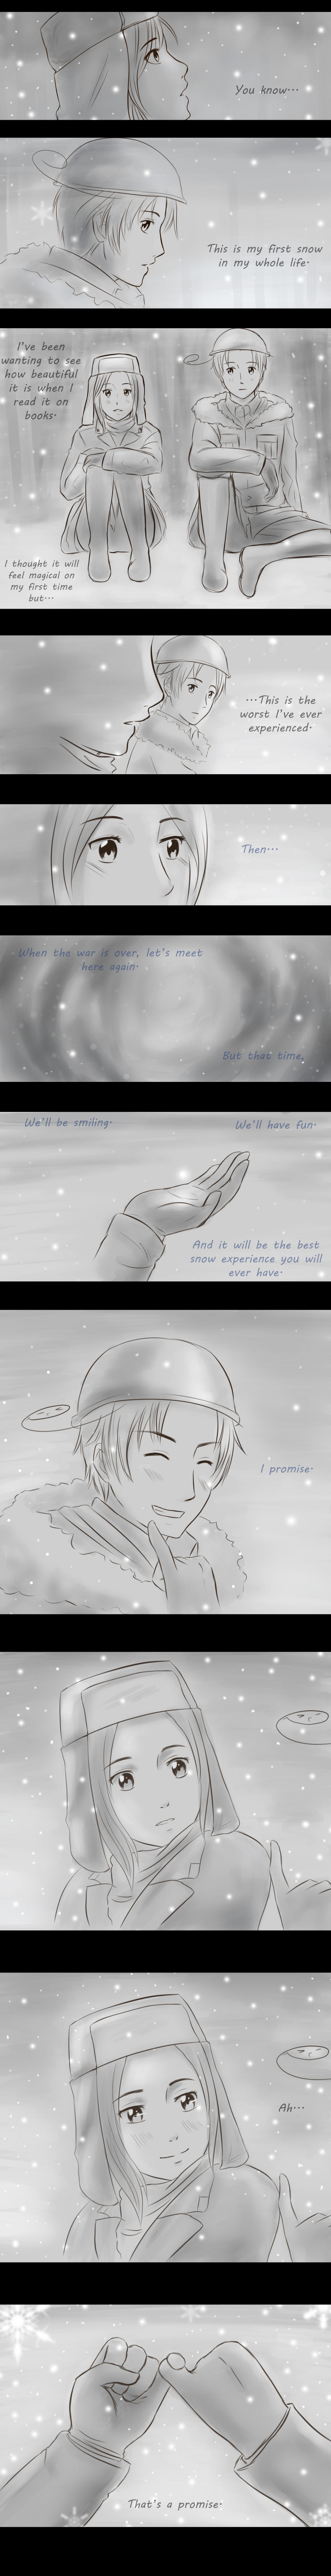 KorPhil: First Snow by ExelionStar